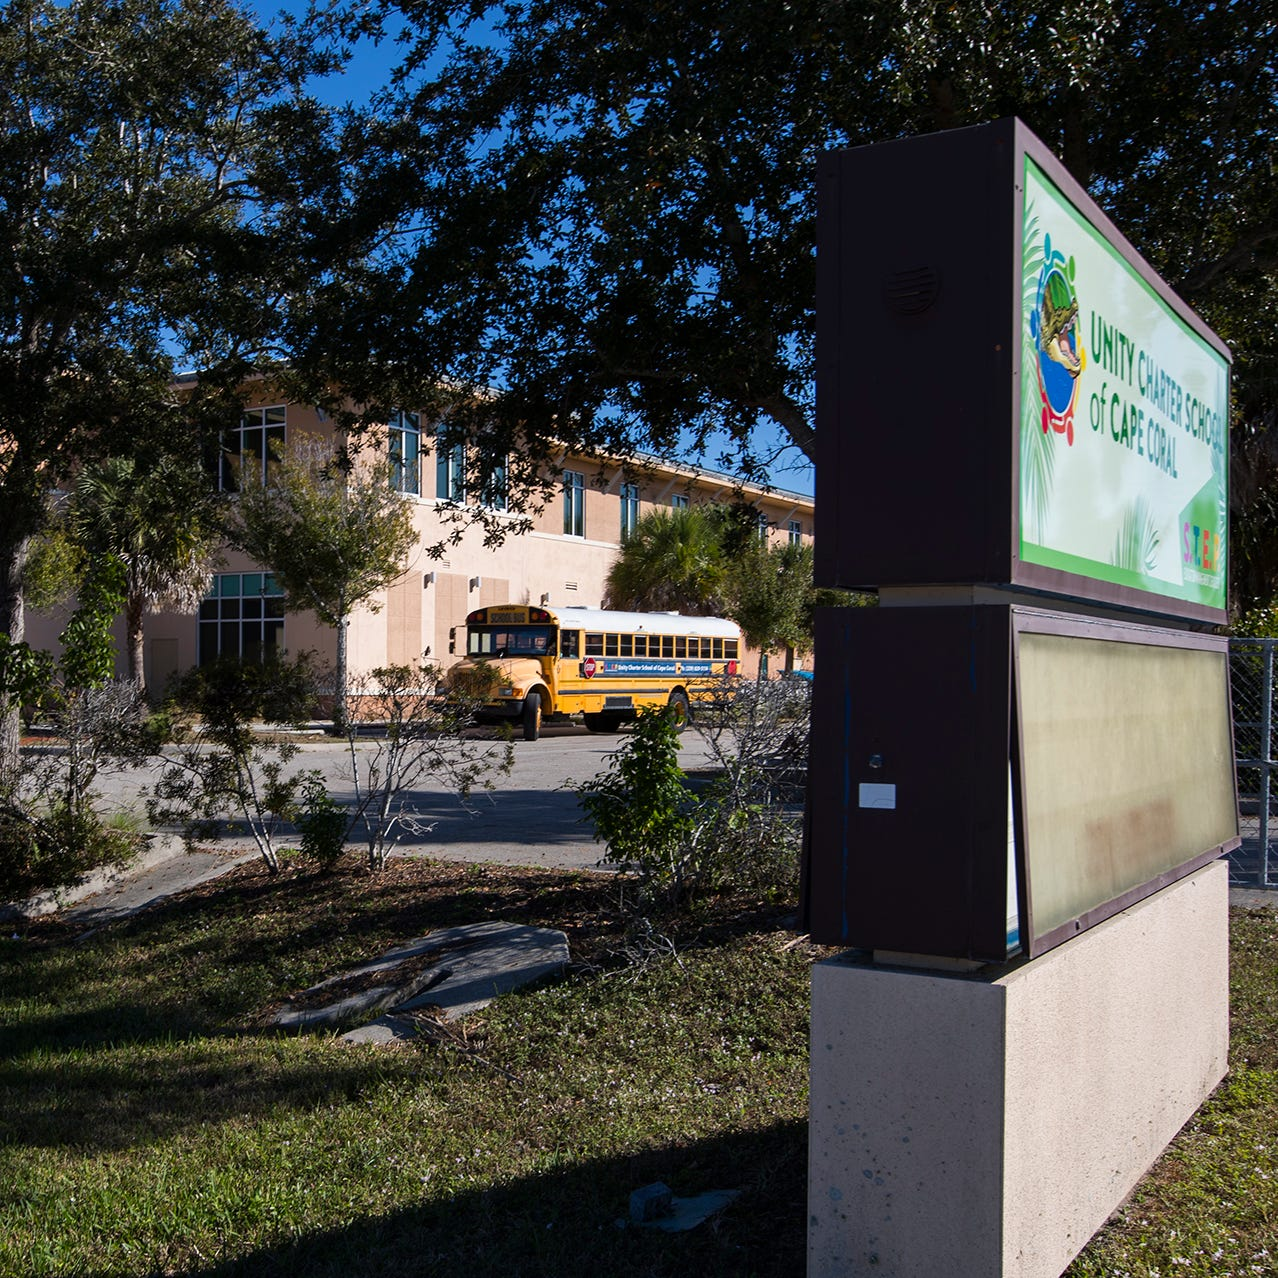 Cape Charter school site to sell at auction after Christmas